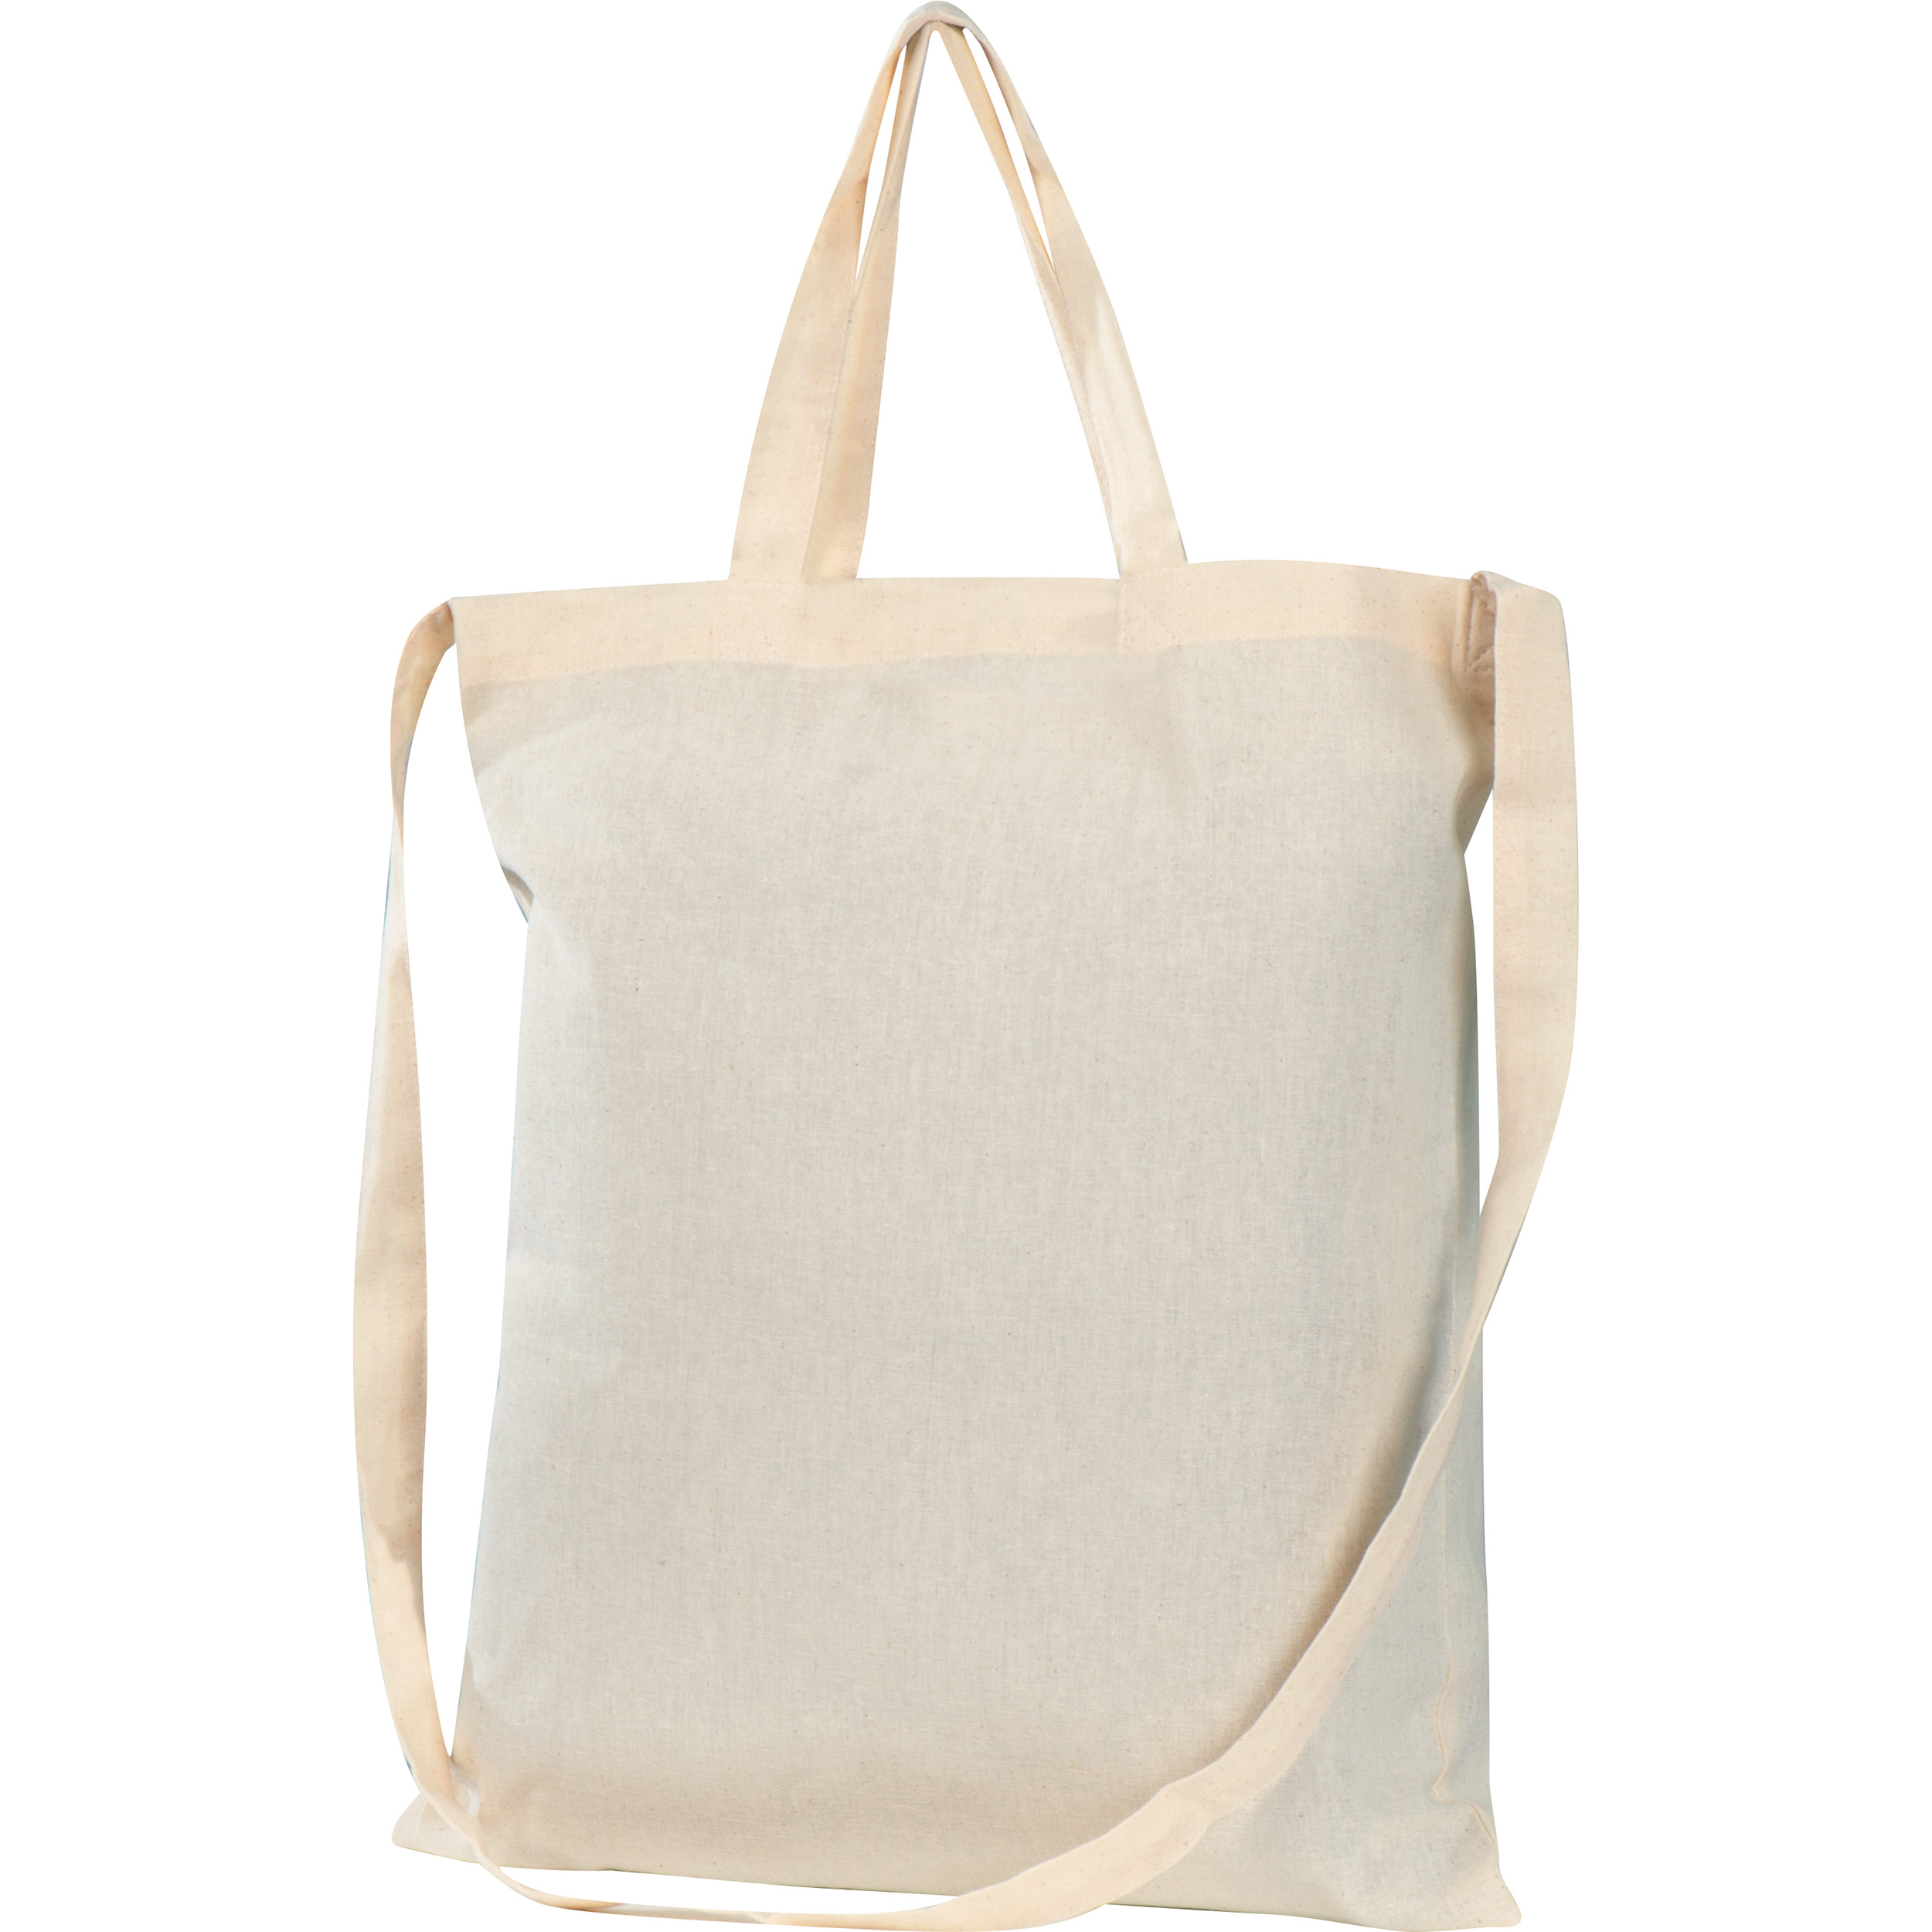 Cotton bag with 3 handles